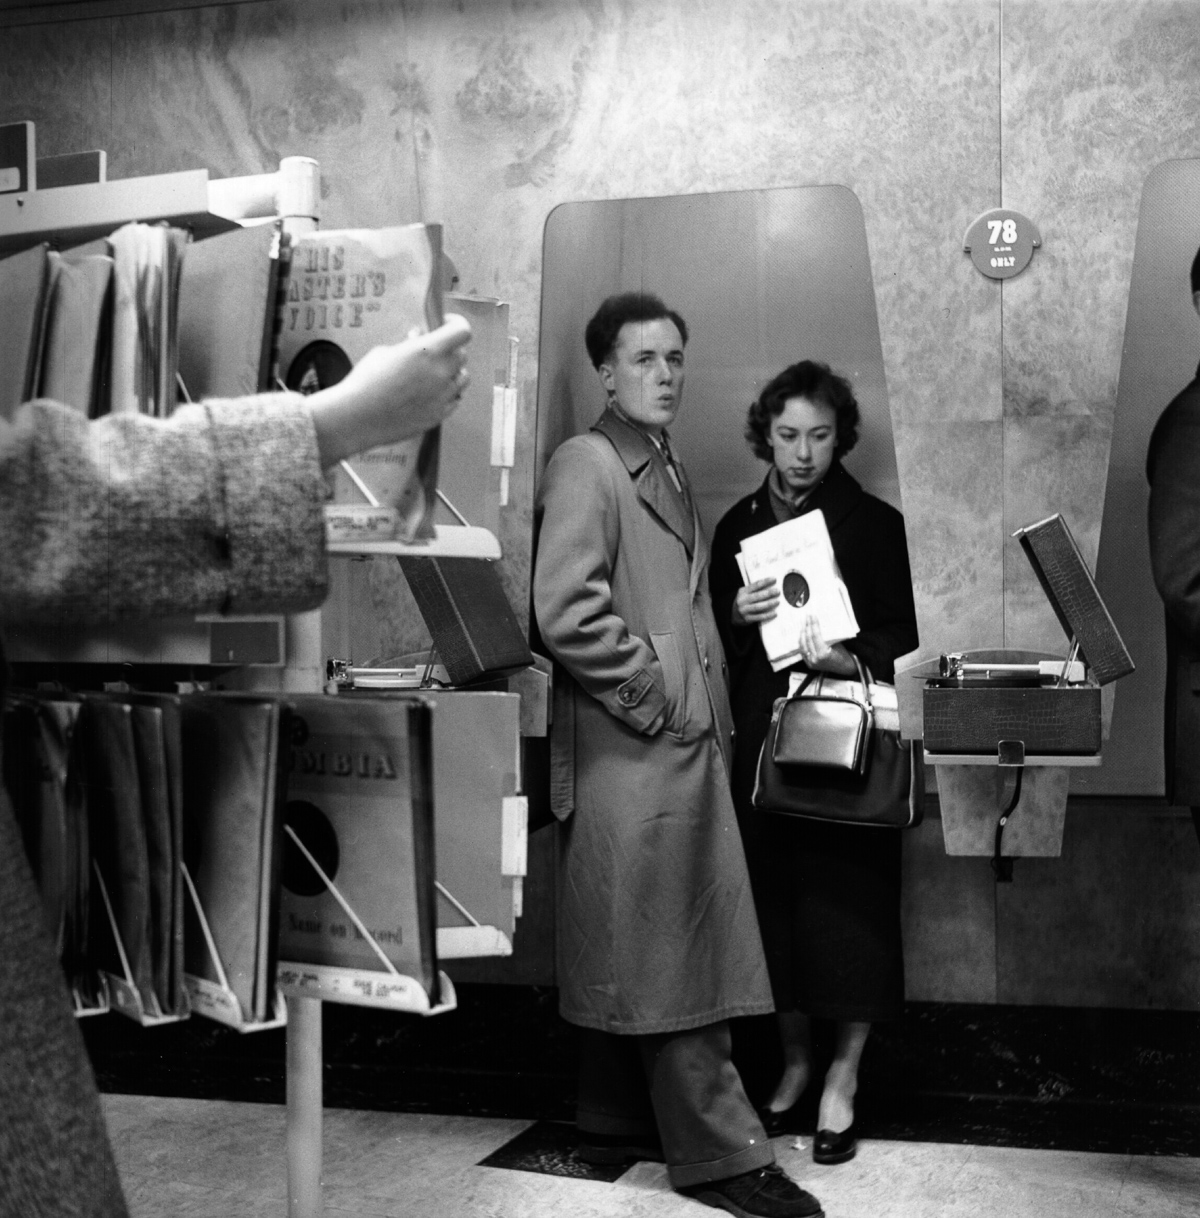 These 1955 Record Store Listening Booths Were Very Space Age